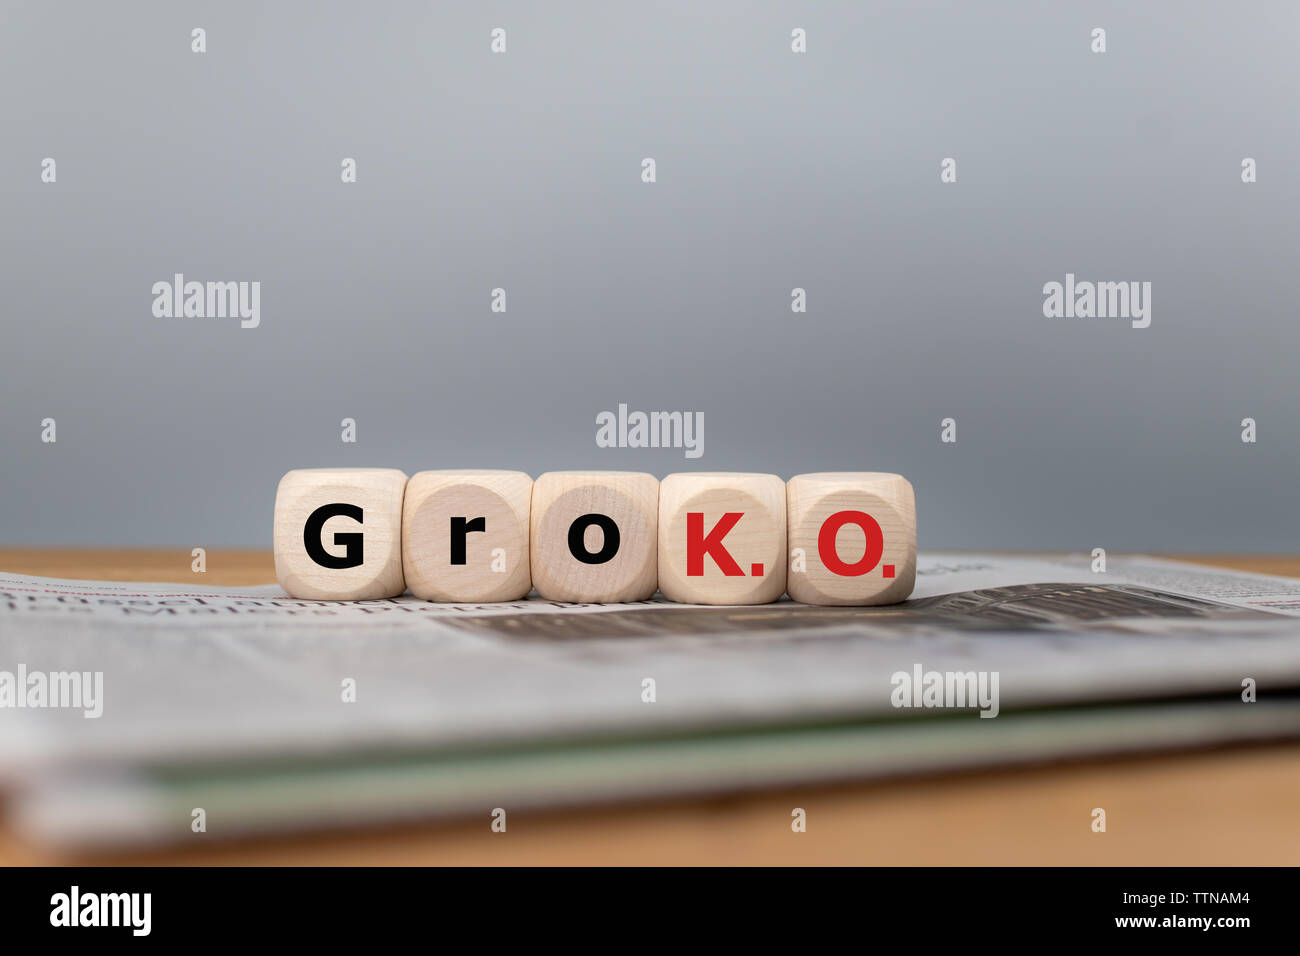 Symbol for the end of the grand coalition called 'GroKO' between the parties SPD and CDU in Germany. Cubes form the abbreviation 'GroKO' placed on a n - Stock Image